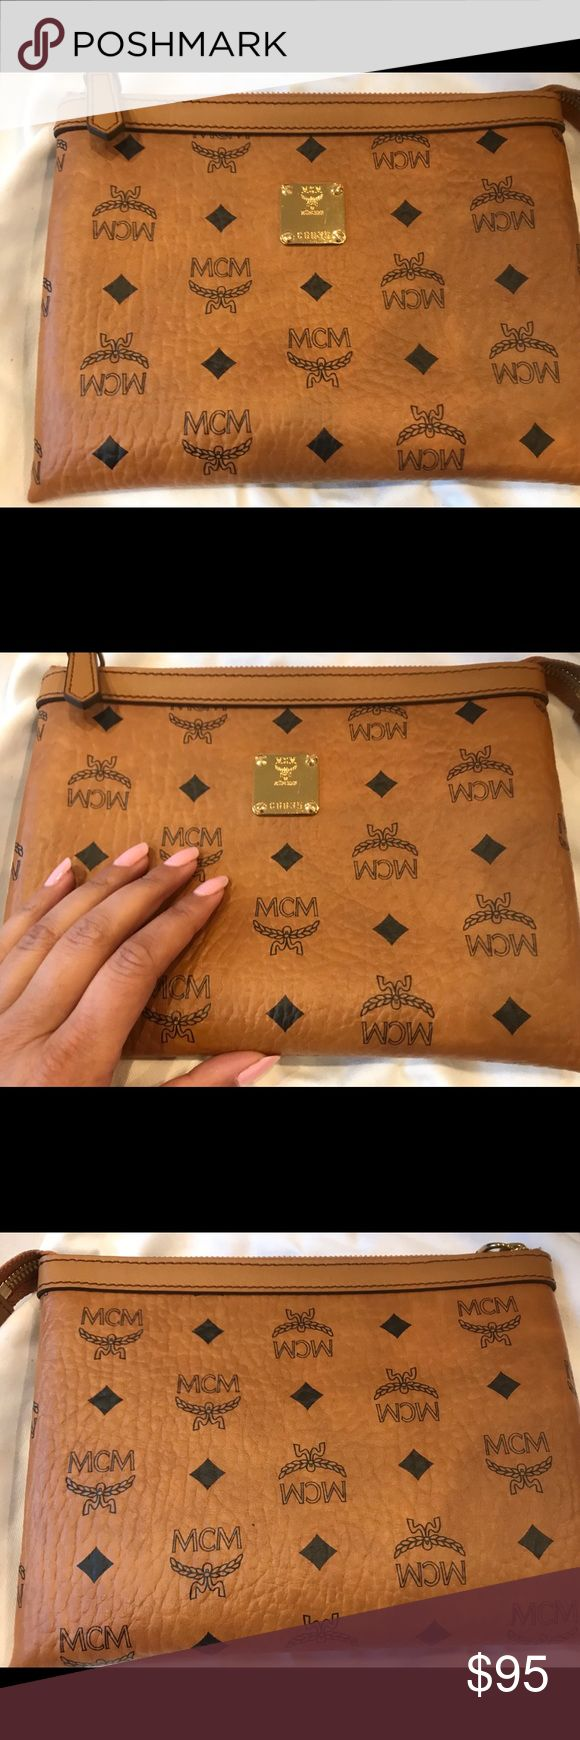 MCM Clutch. Like new. Worn once. Still like new with dustbag. MCM Bags Clutches & Wristlets